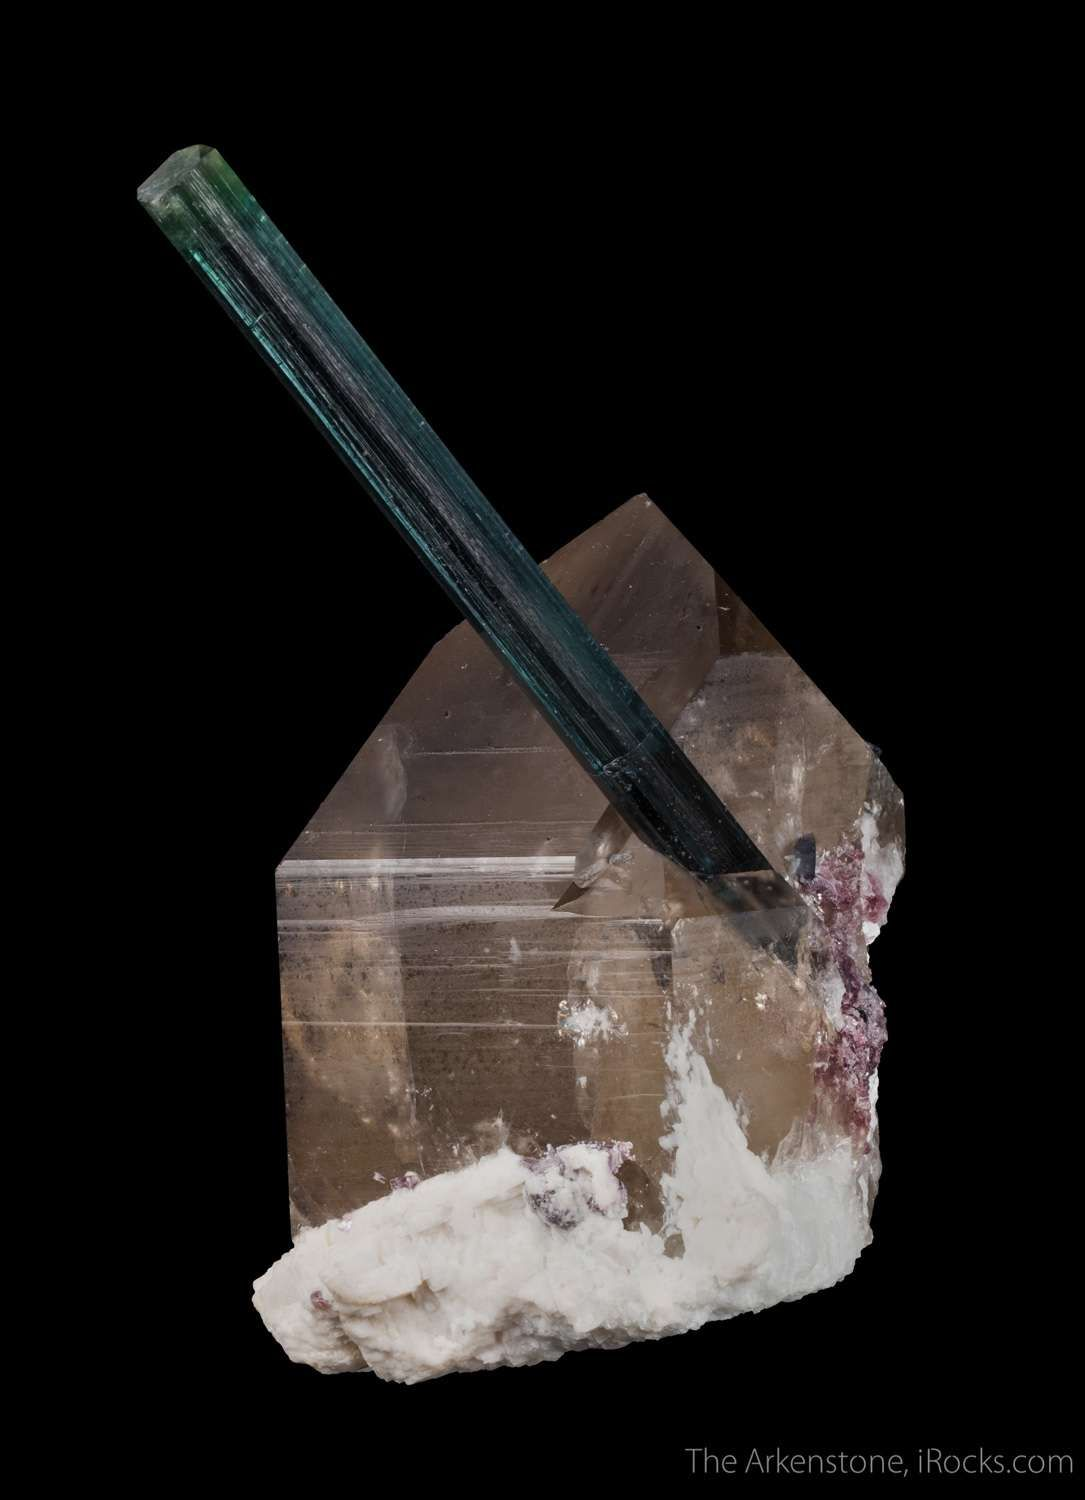 Tourmaline var. Indicolite on Quartz